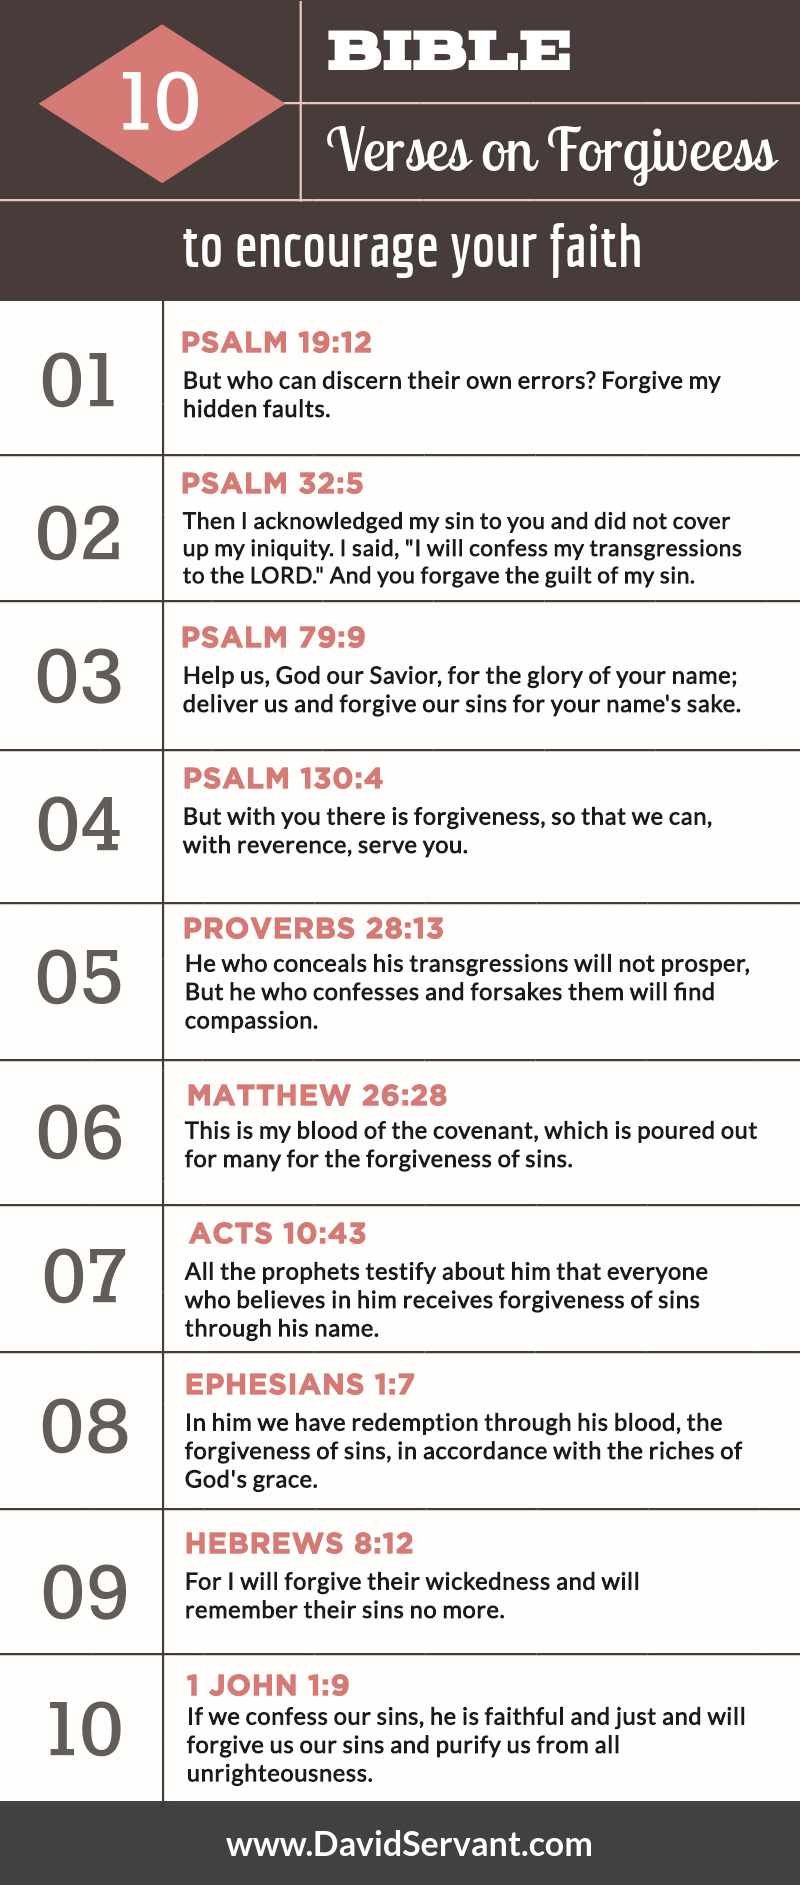 10 Bible verses on forgiveness to encourage your faith - infographic